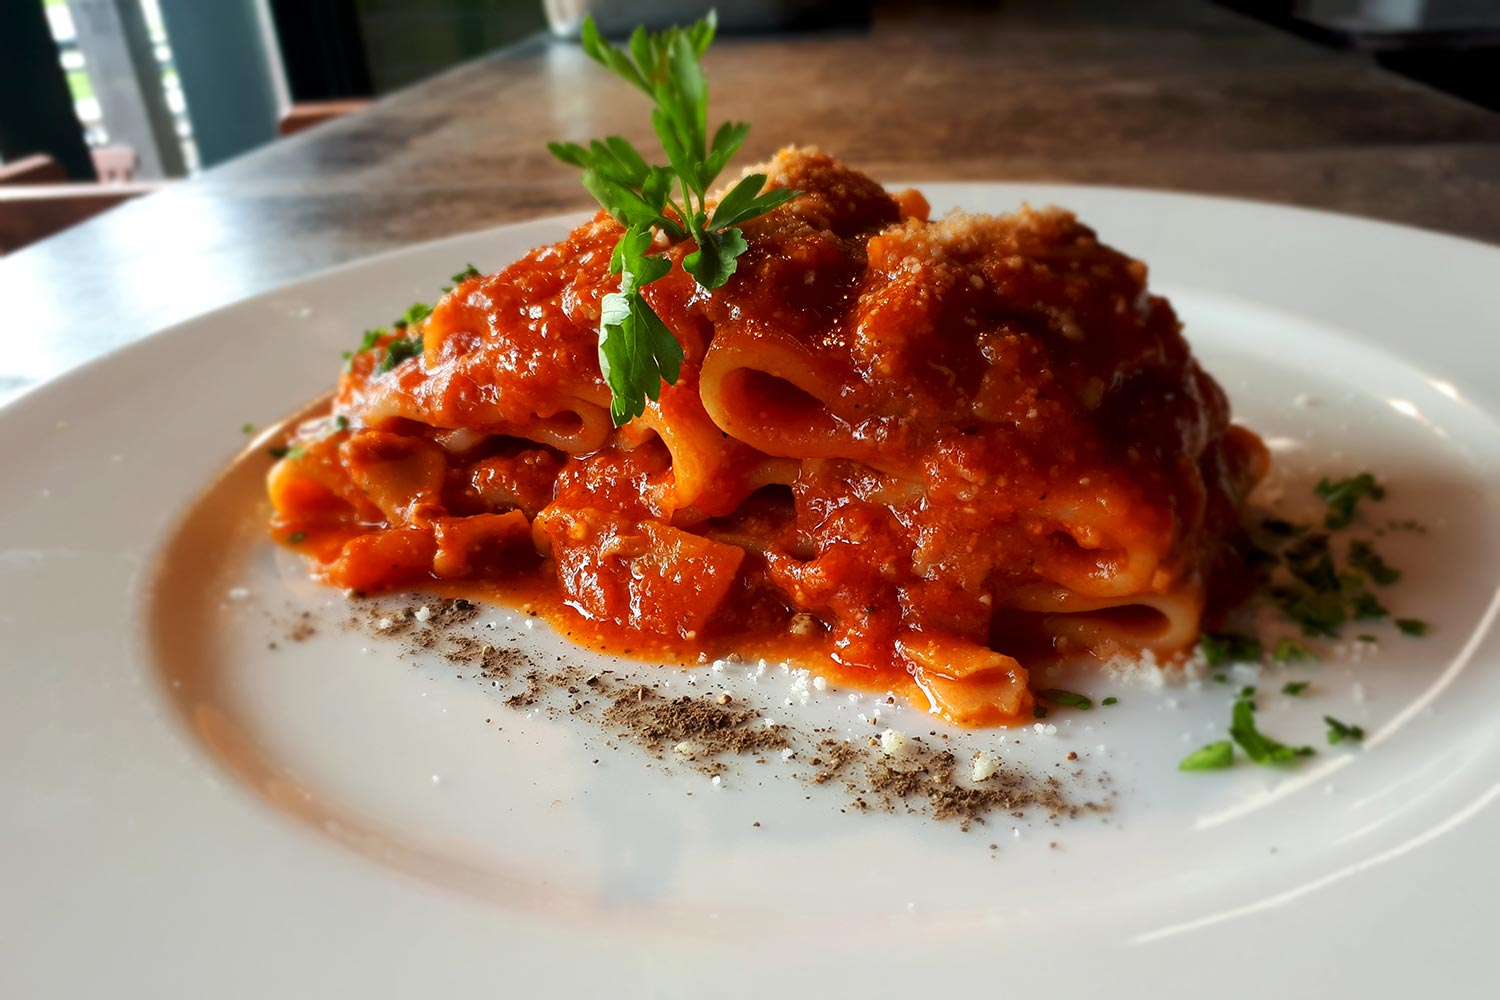 Photo of Paccheri All'Amatriciana pasta at Gotto Trattoria in East London